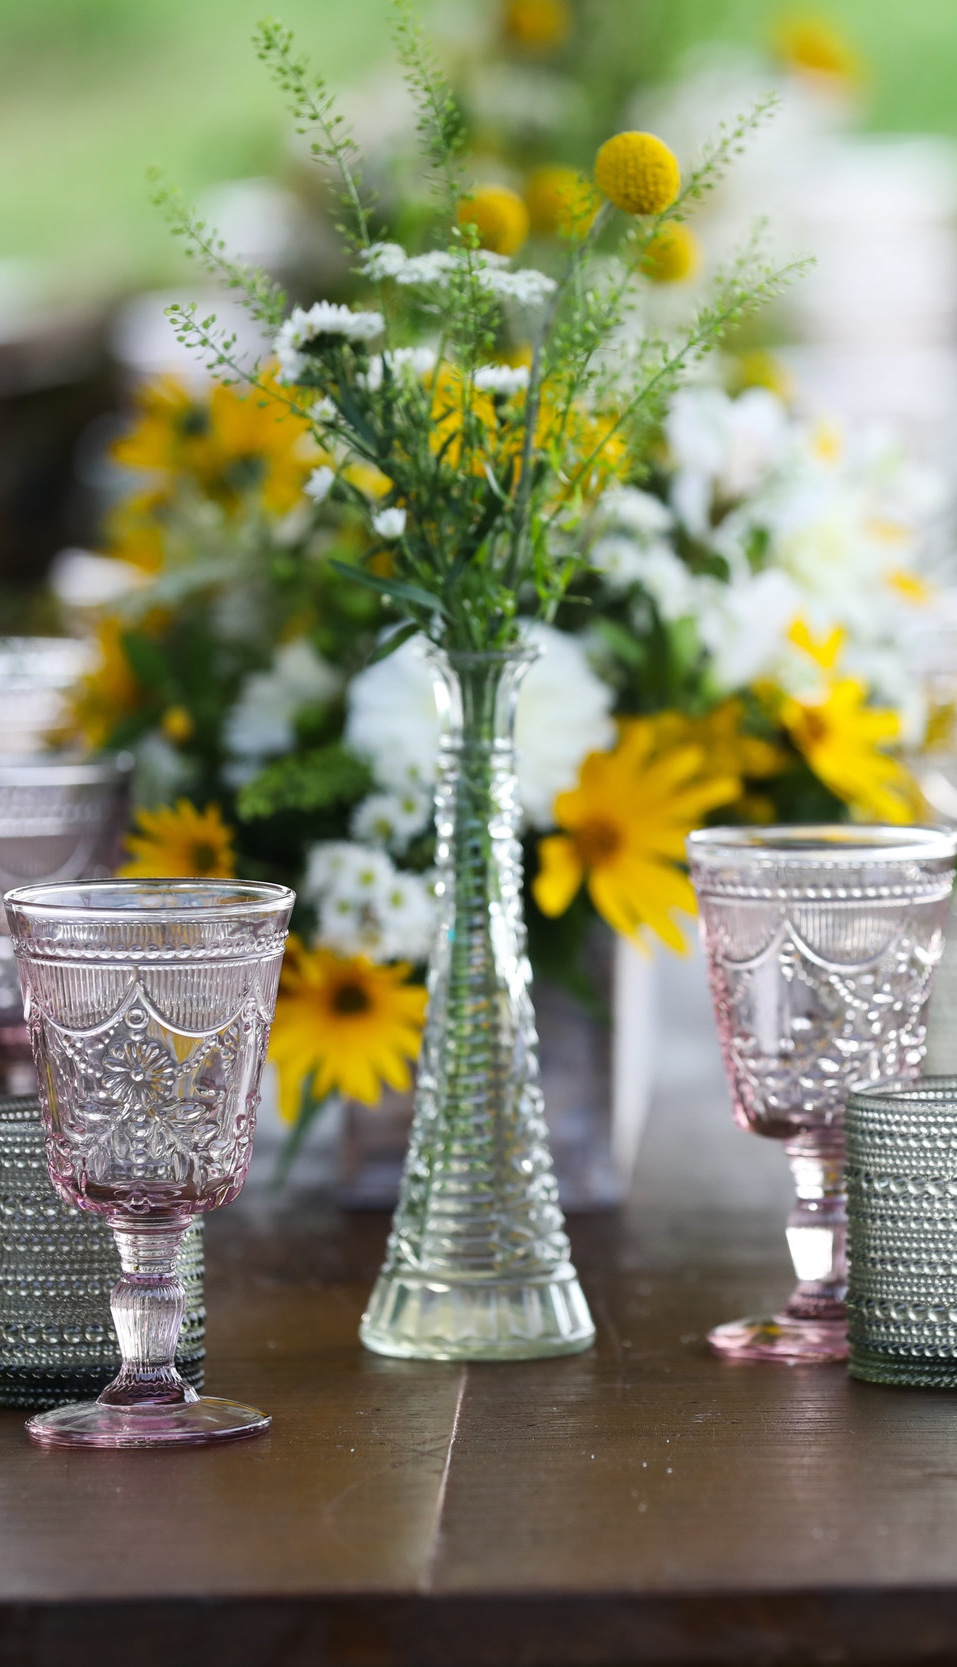 Eclectic Glass Bud Vases $2/per